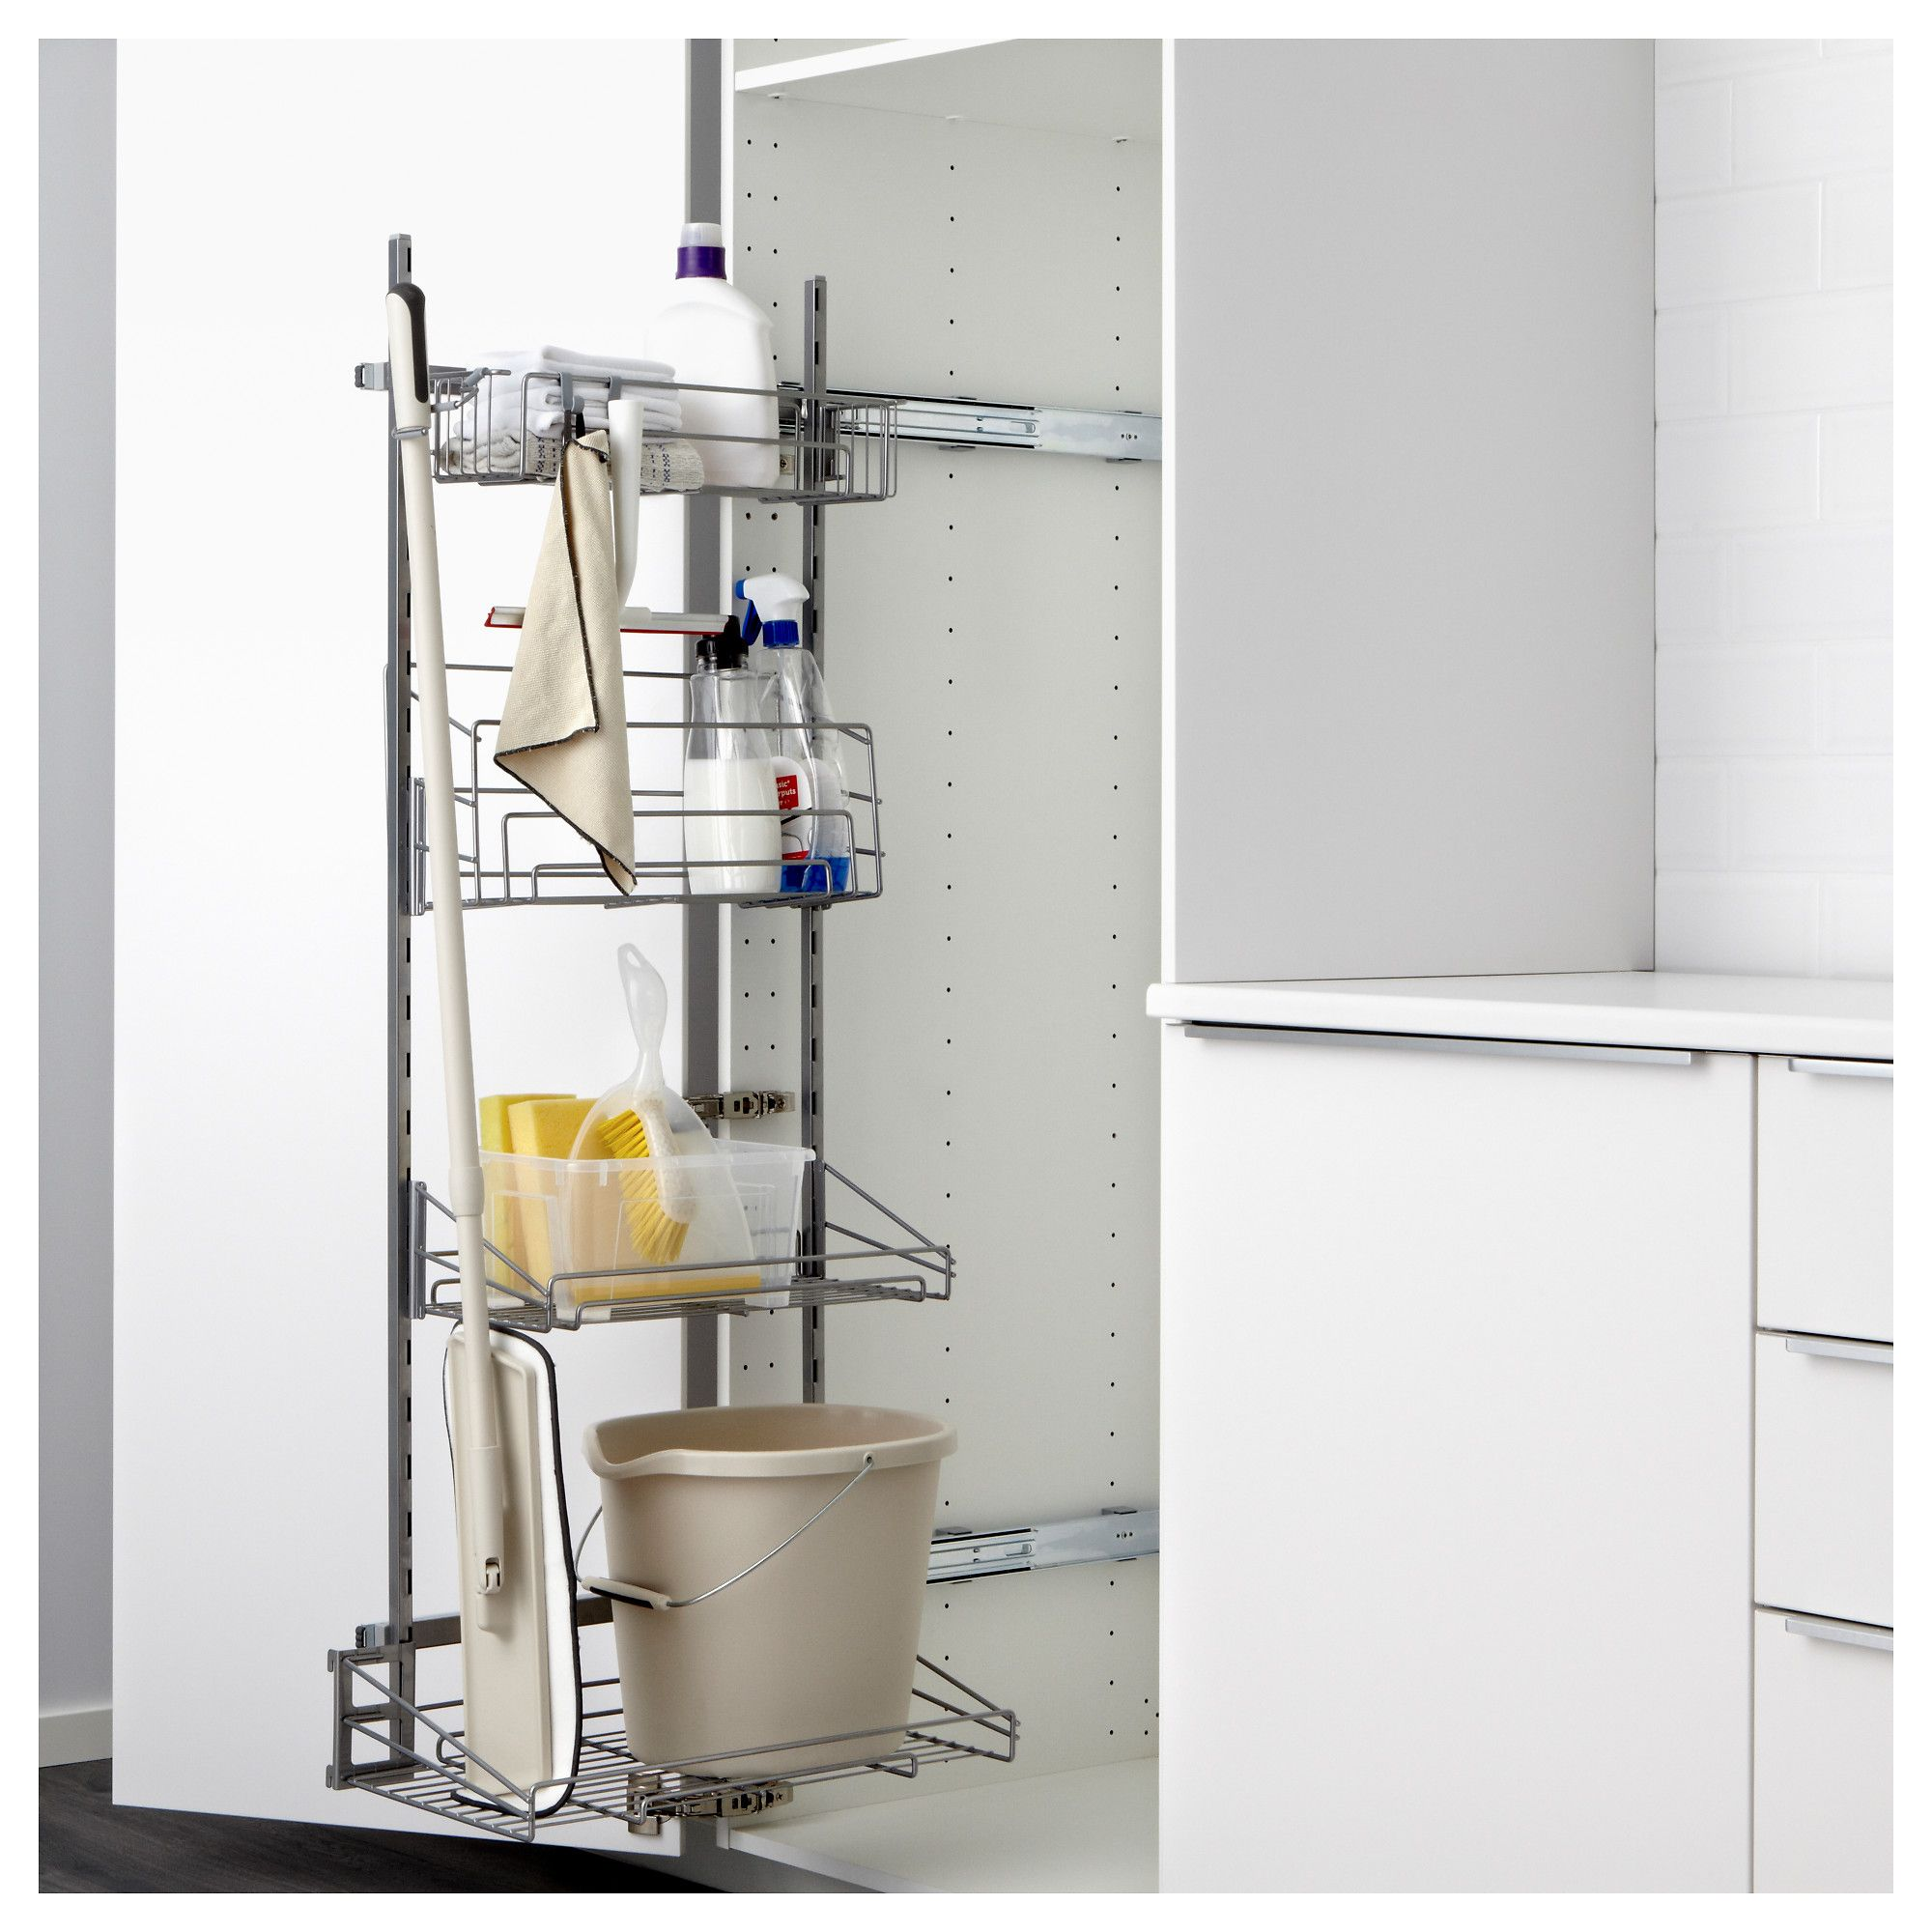 Kitchen Drawer Organizer Ikea Door Pulls Utrusta Pull Out Rack For Cleaning Supplies Products